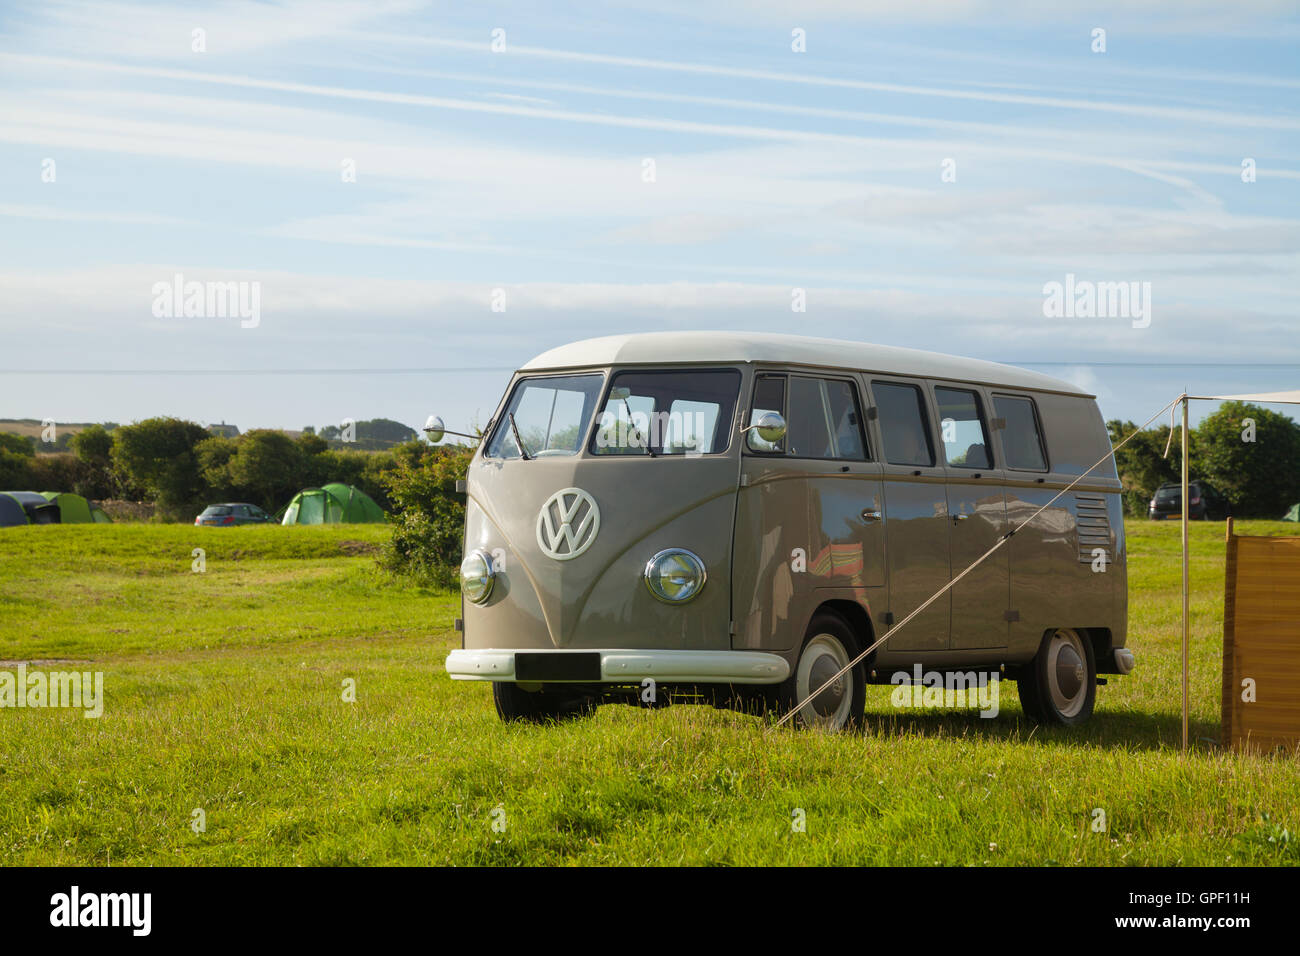 Un VW Camping-car et tente dans un camping. Photo Stock